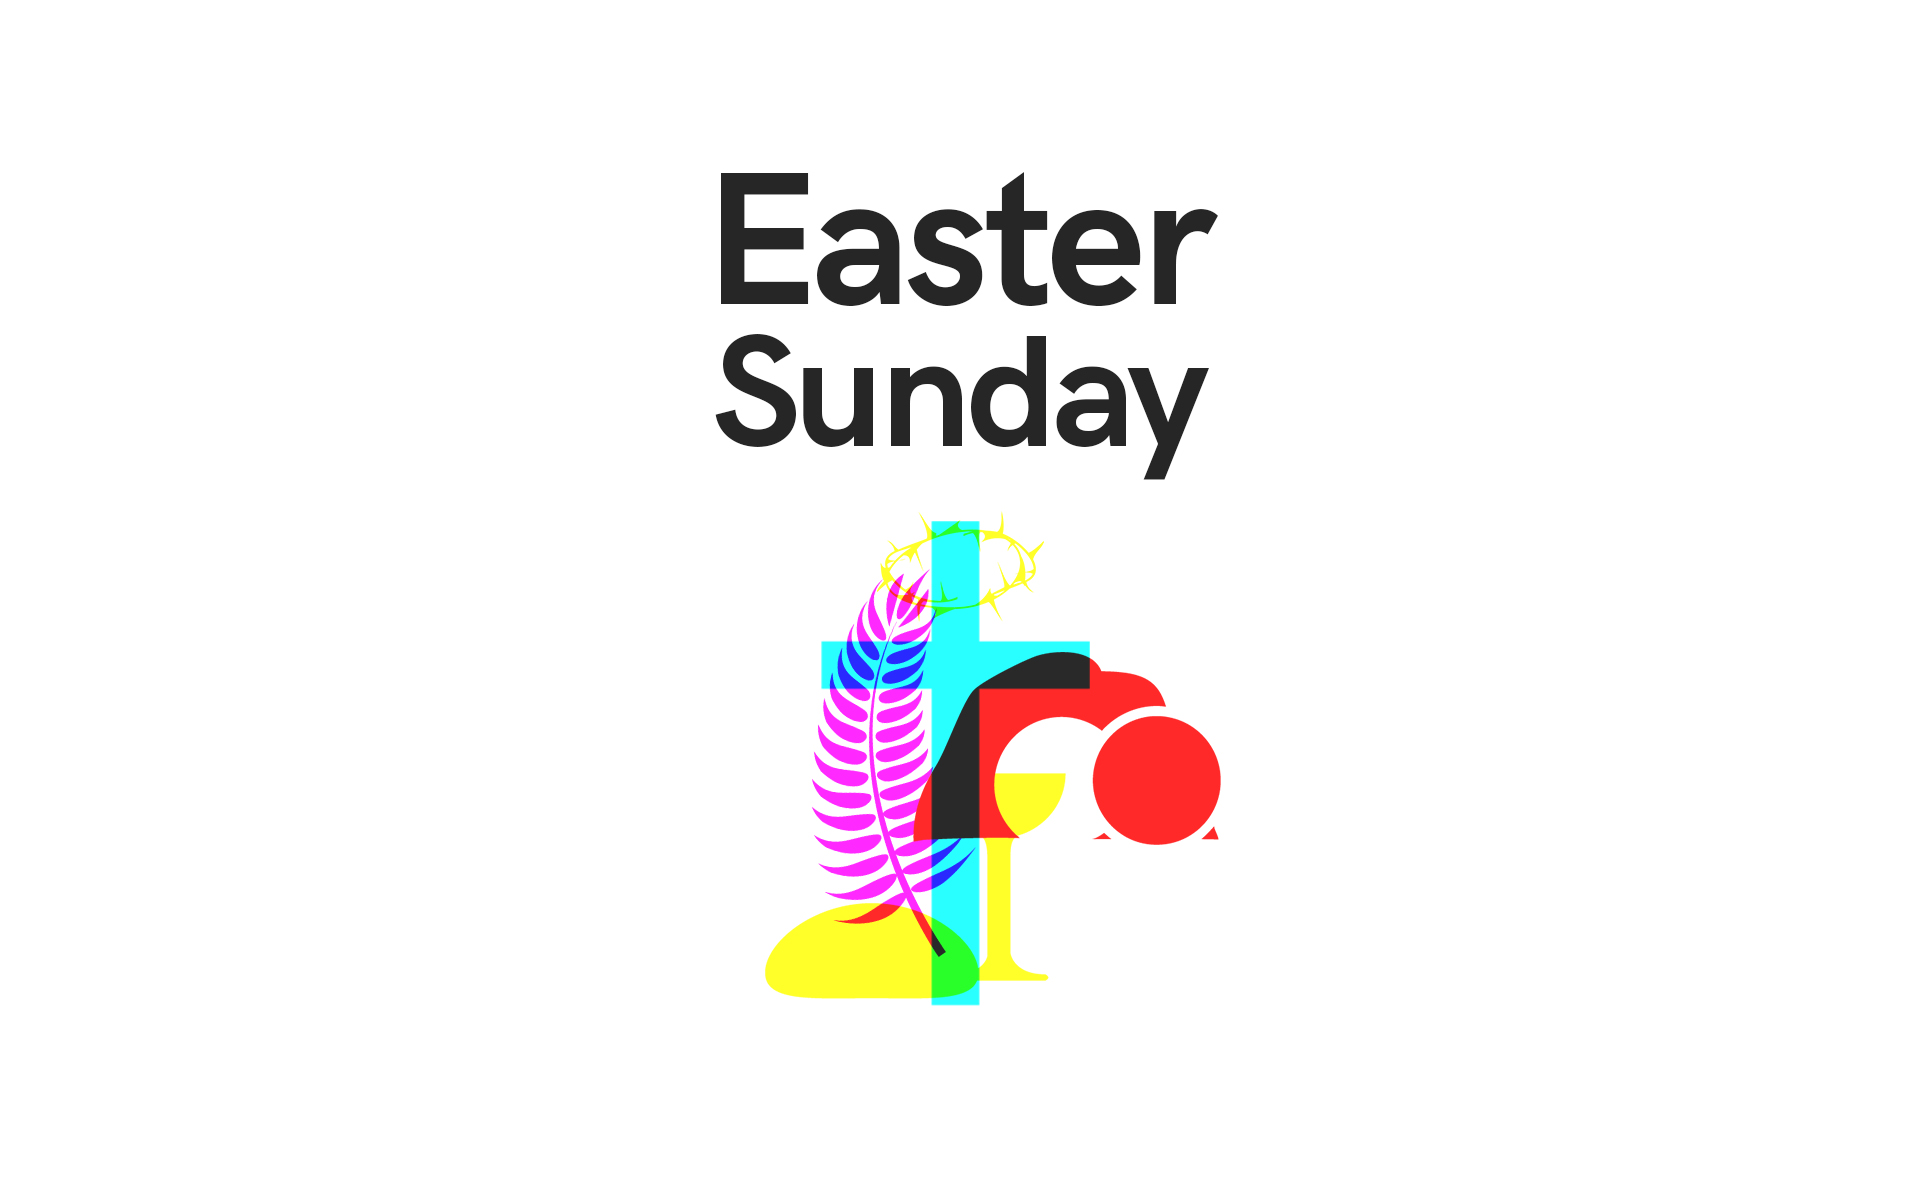 easter design easter sunday happy.jpg